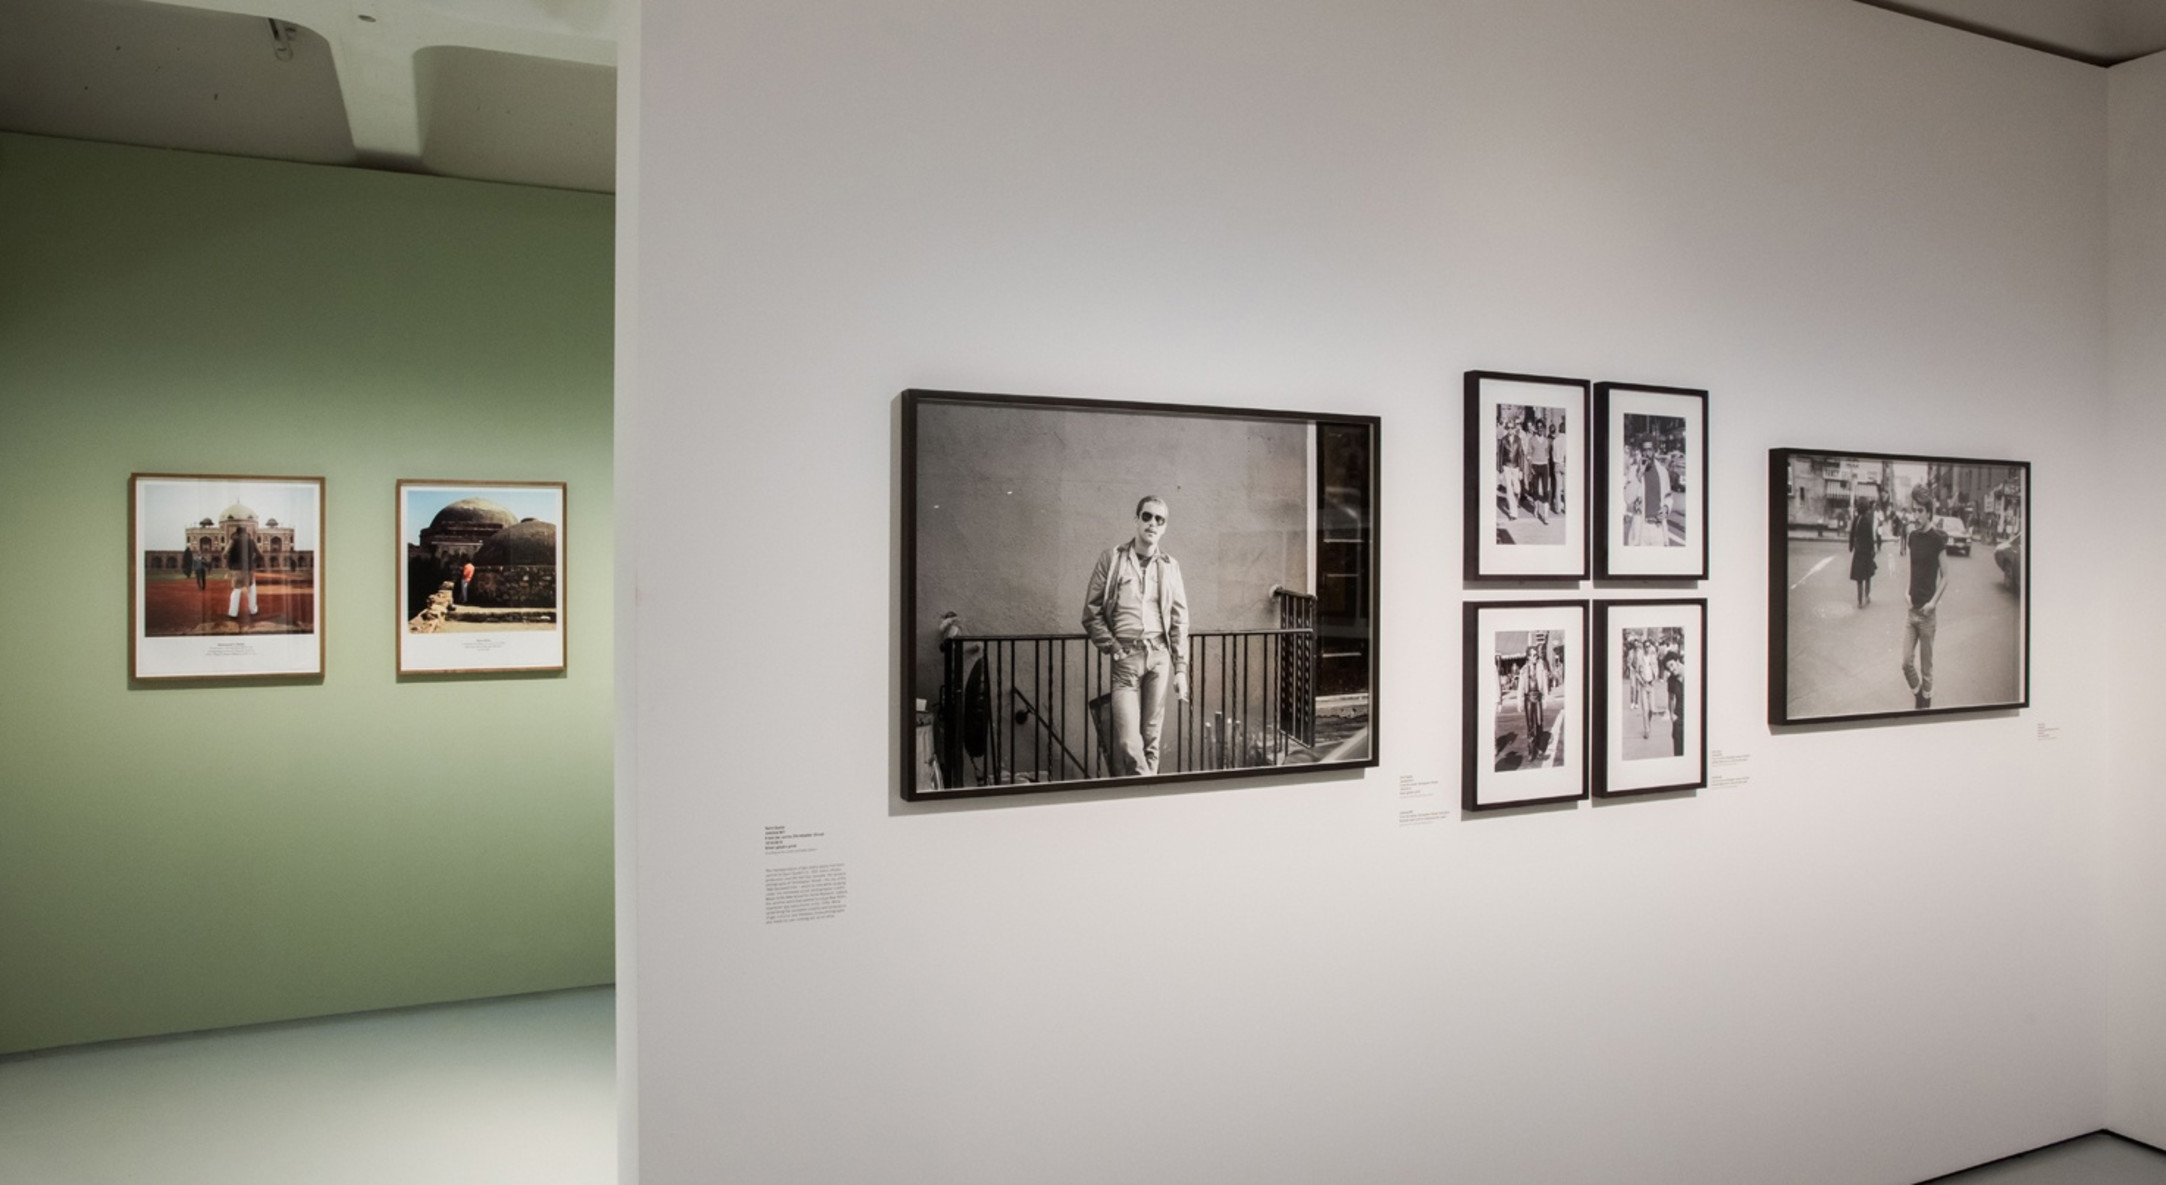 Installation view of Masculinities, Liberation through Photography, Barbican Art Gallery, 20 February 2020 – 17 May 2020. Photo by Max Colson